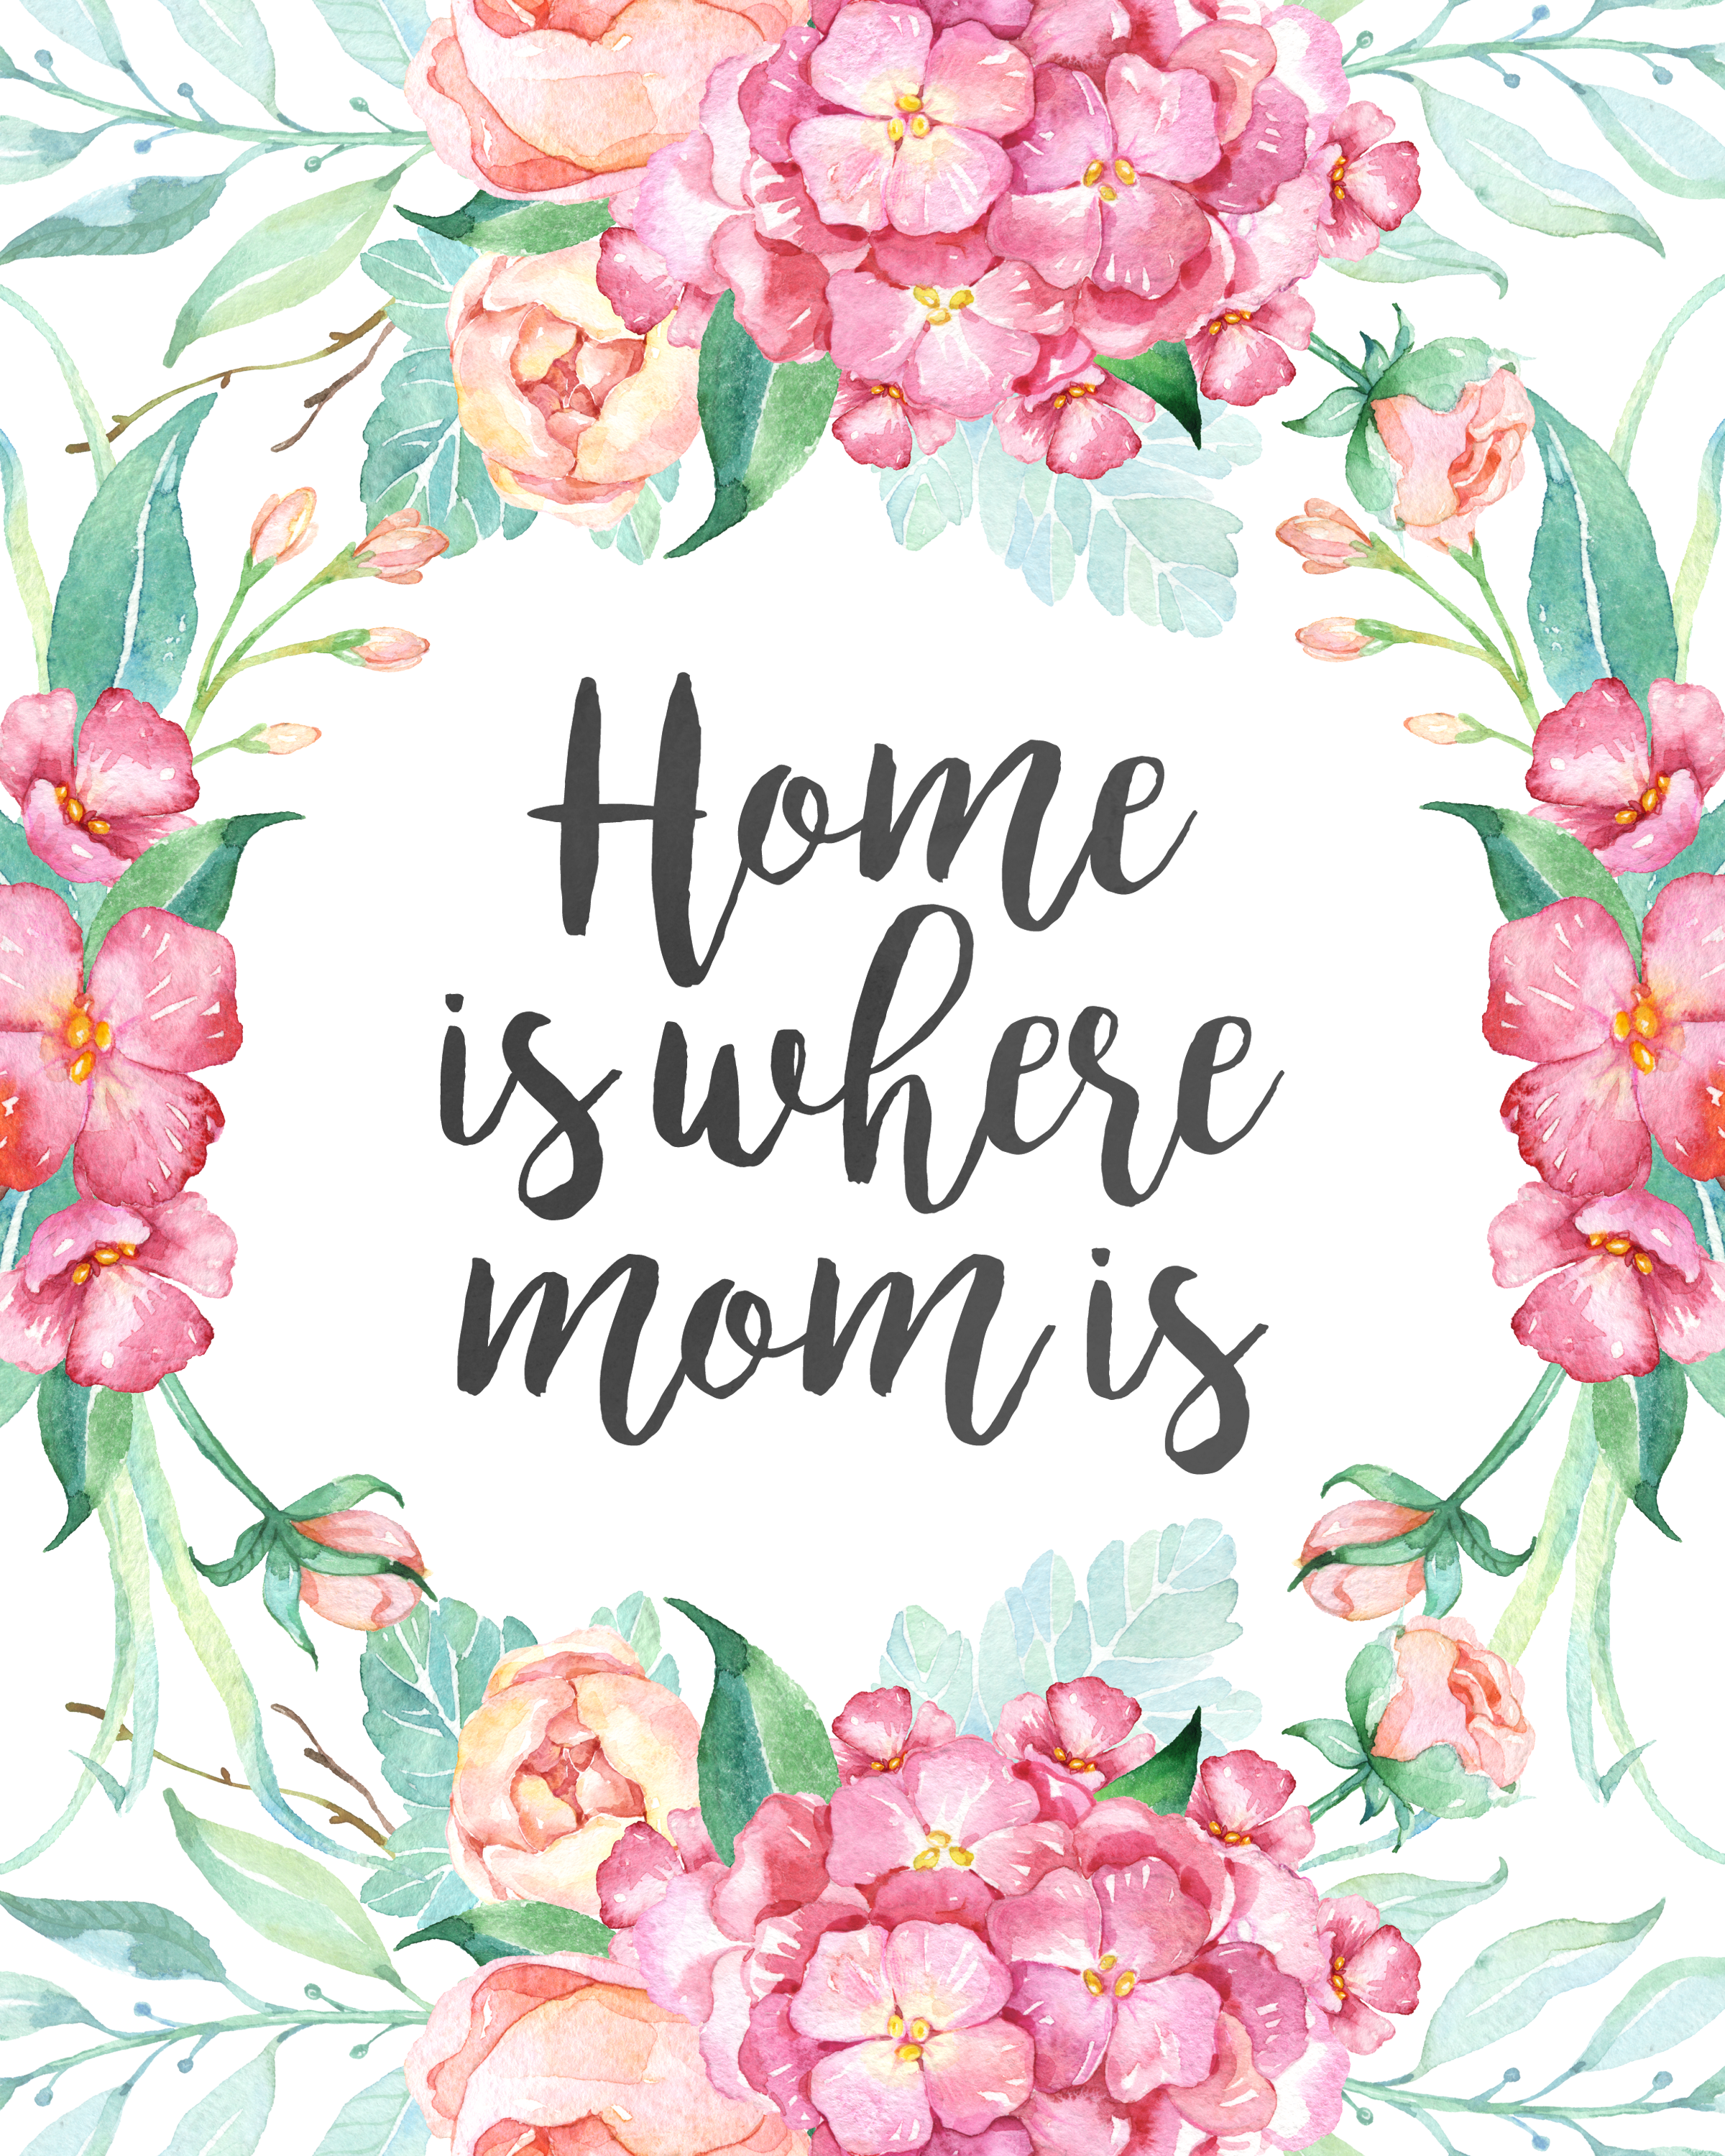 Free printable mothers day prints and greeting cards the home is where mom is greeting card kristyandbryce Choice Image